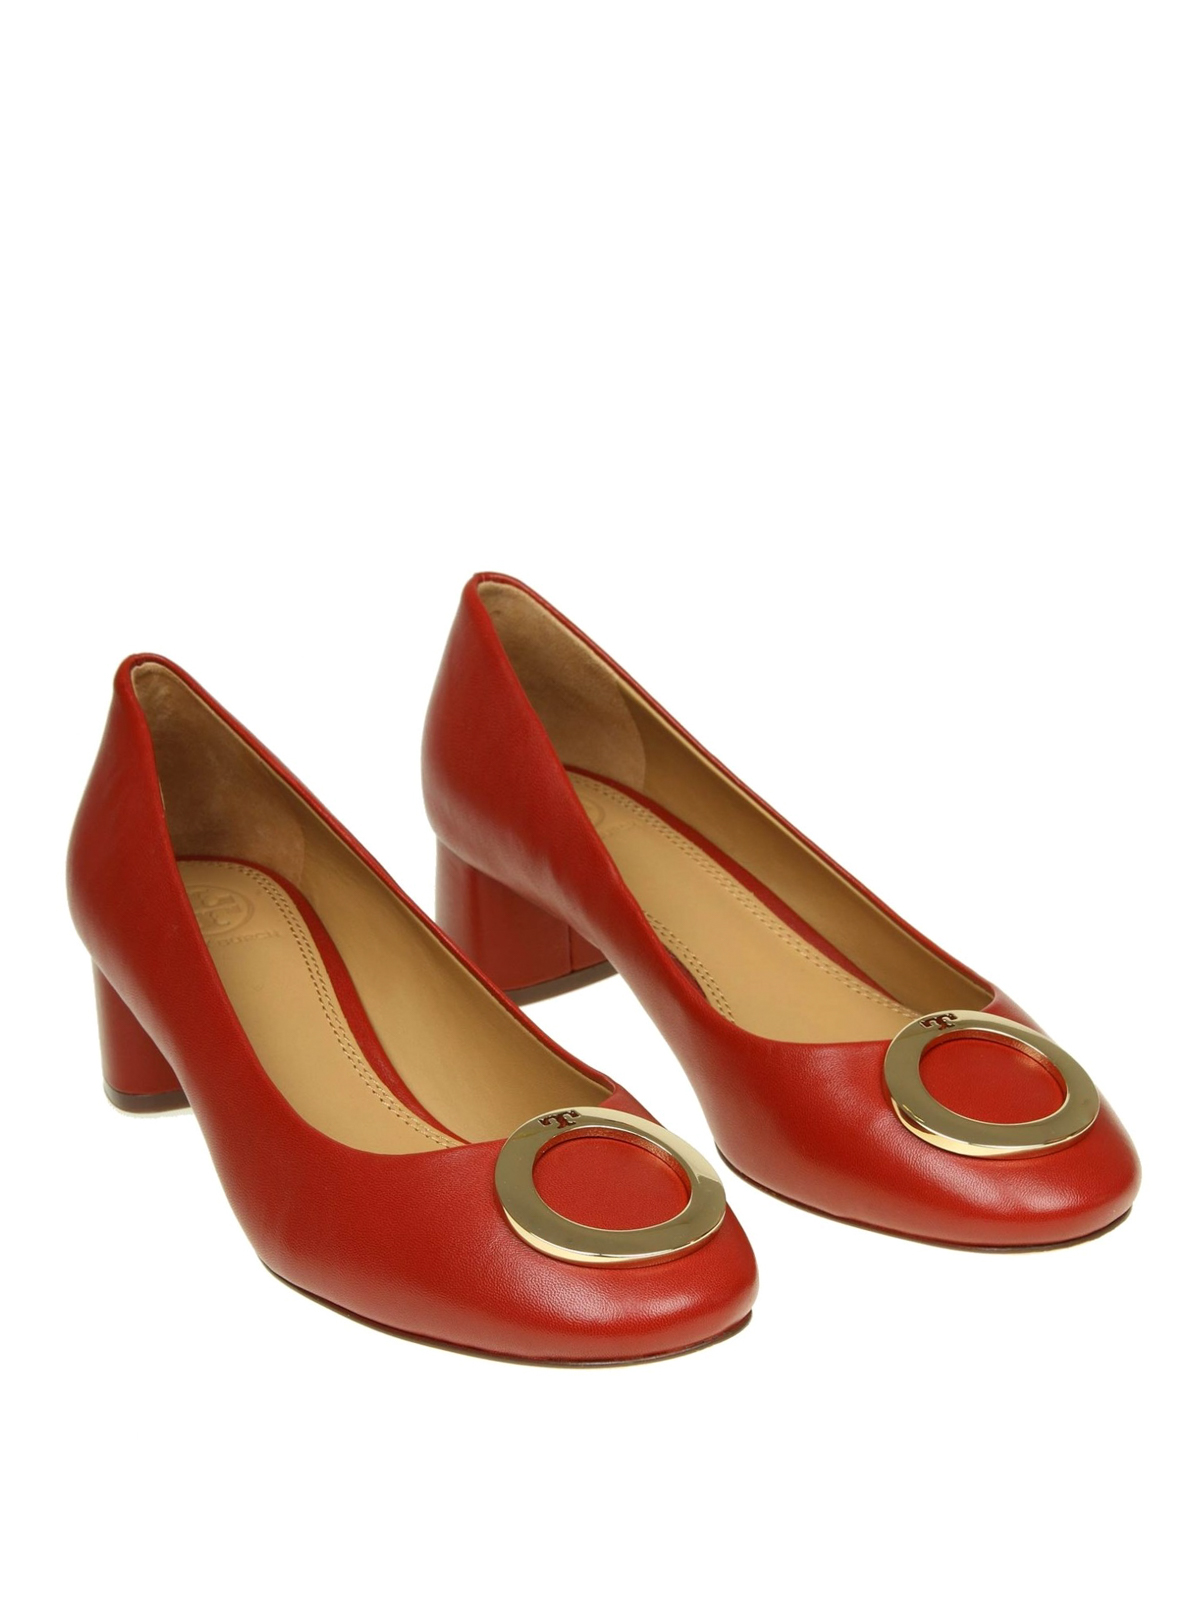 accc92b3ebf5 TORY BURCH  court shoes online - Caterina metal logo detailed leather pumps